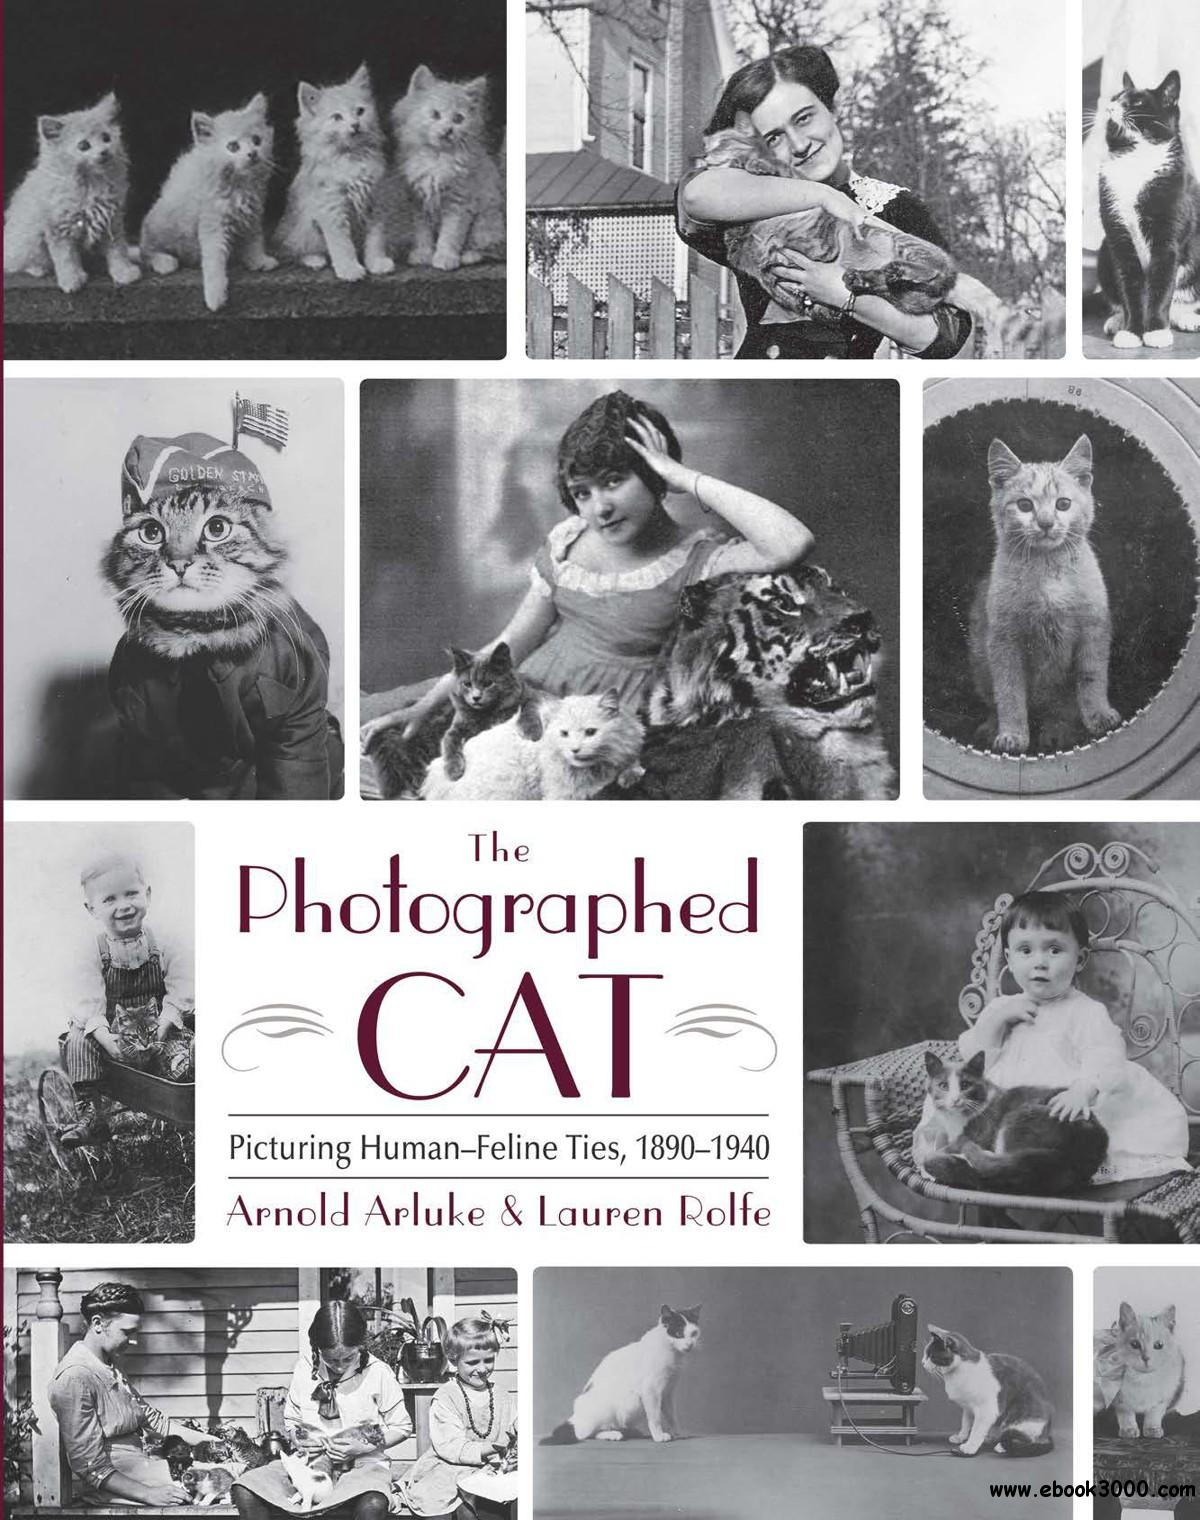 The Photographed Cat: Picturing Human-Feline Ties 1890-1940 free download